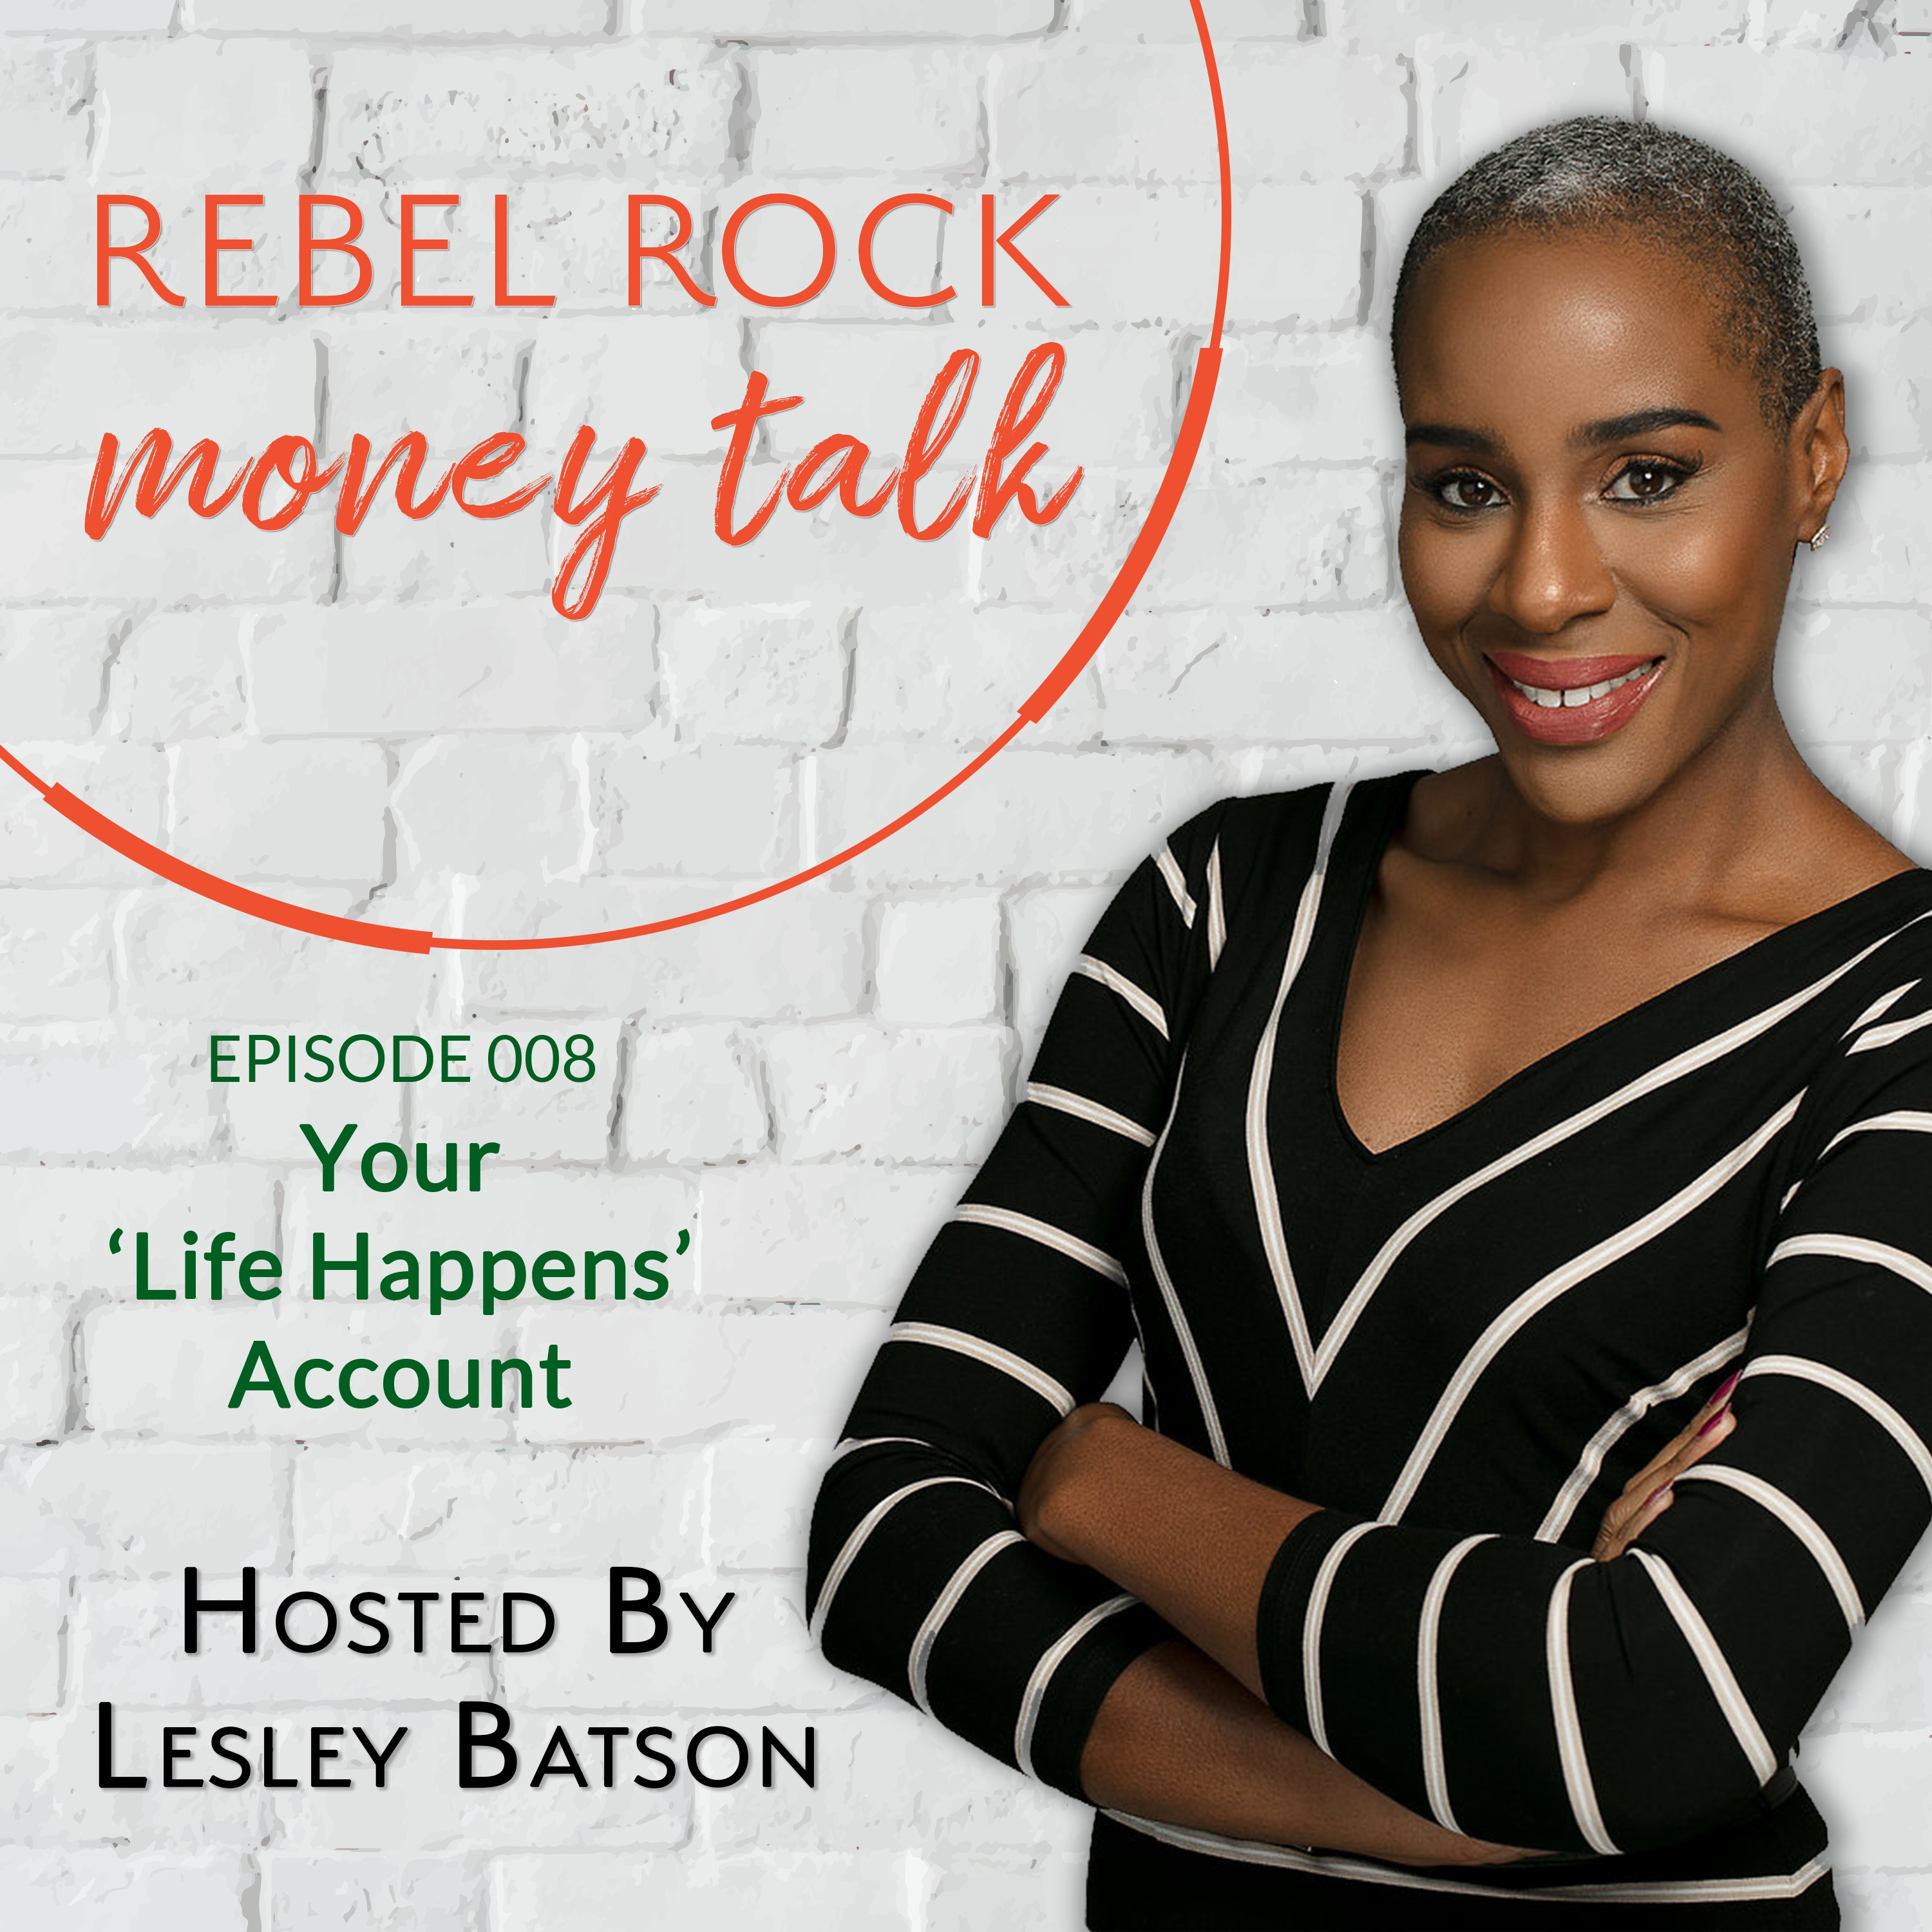 #008 - Your Life Happens Account